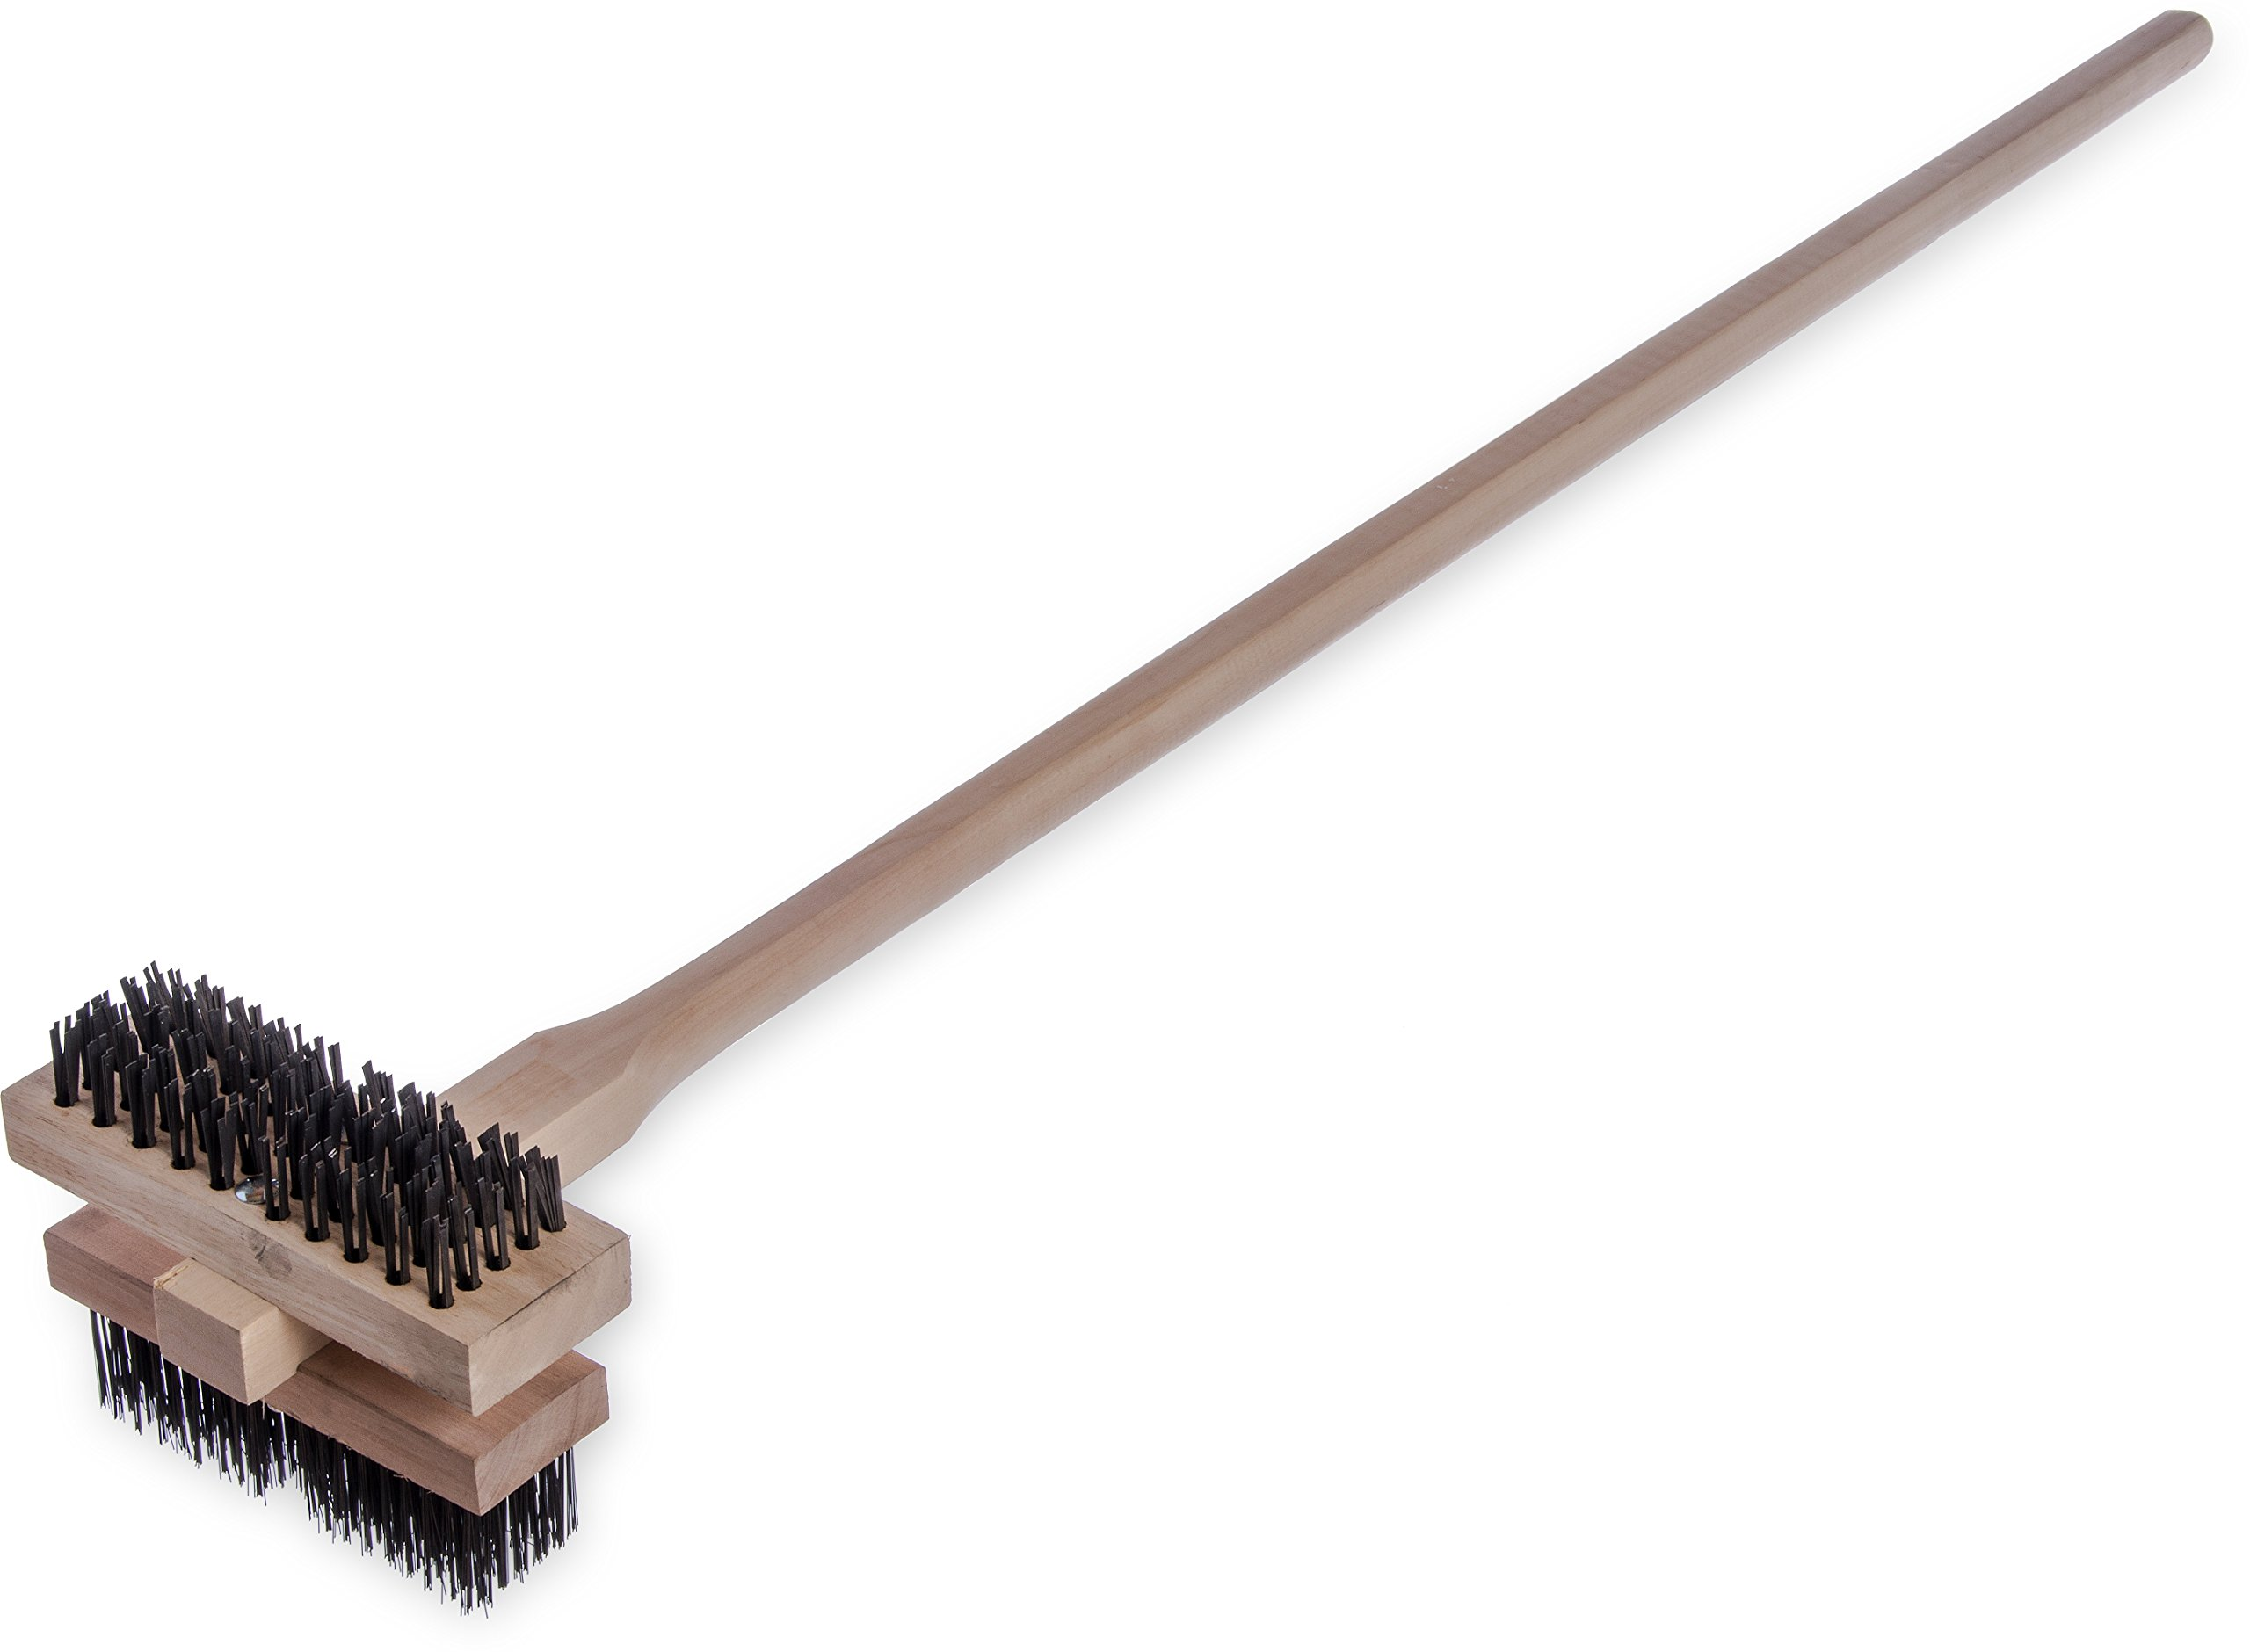 "Carlisle 4029400 Carbon Steel Double Broiler King Brush with Hardwood Handle, 7-3/4"" Brush Length, 1-5/8"" Bristle Trim, 48"" Overall Length (Case of 2)"